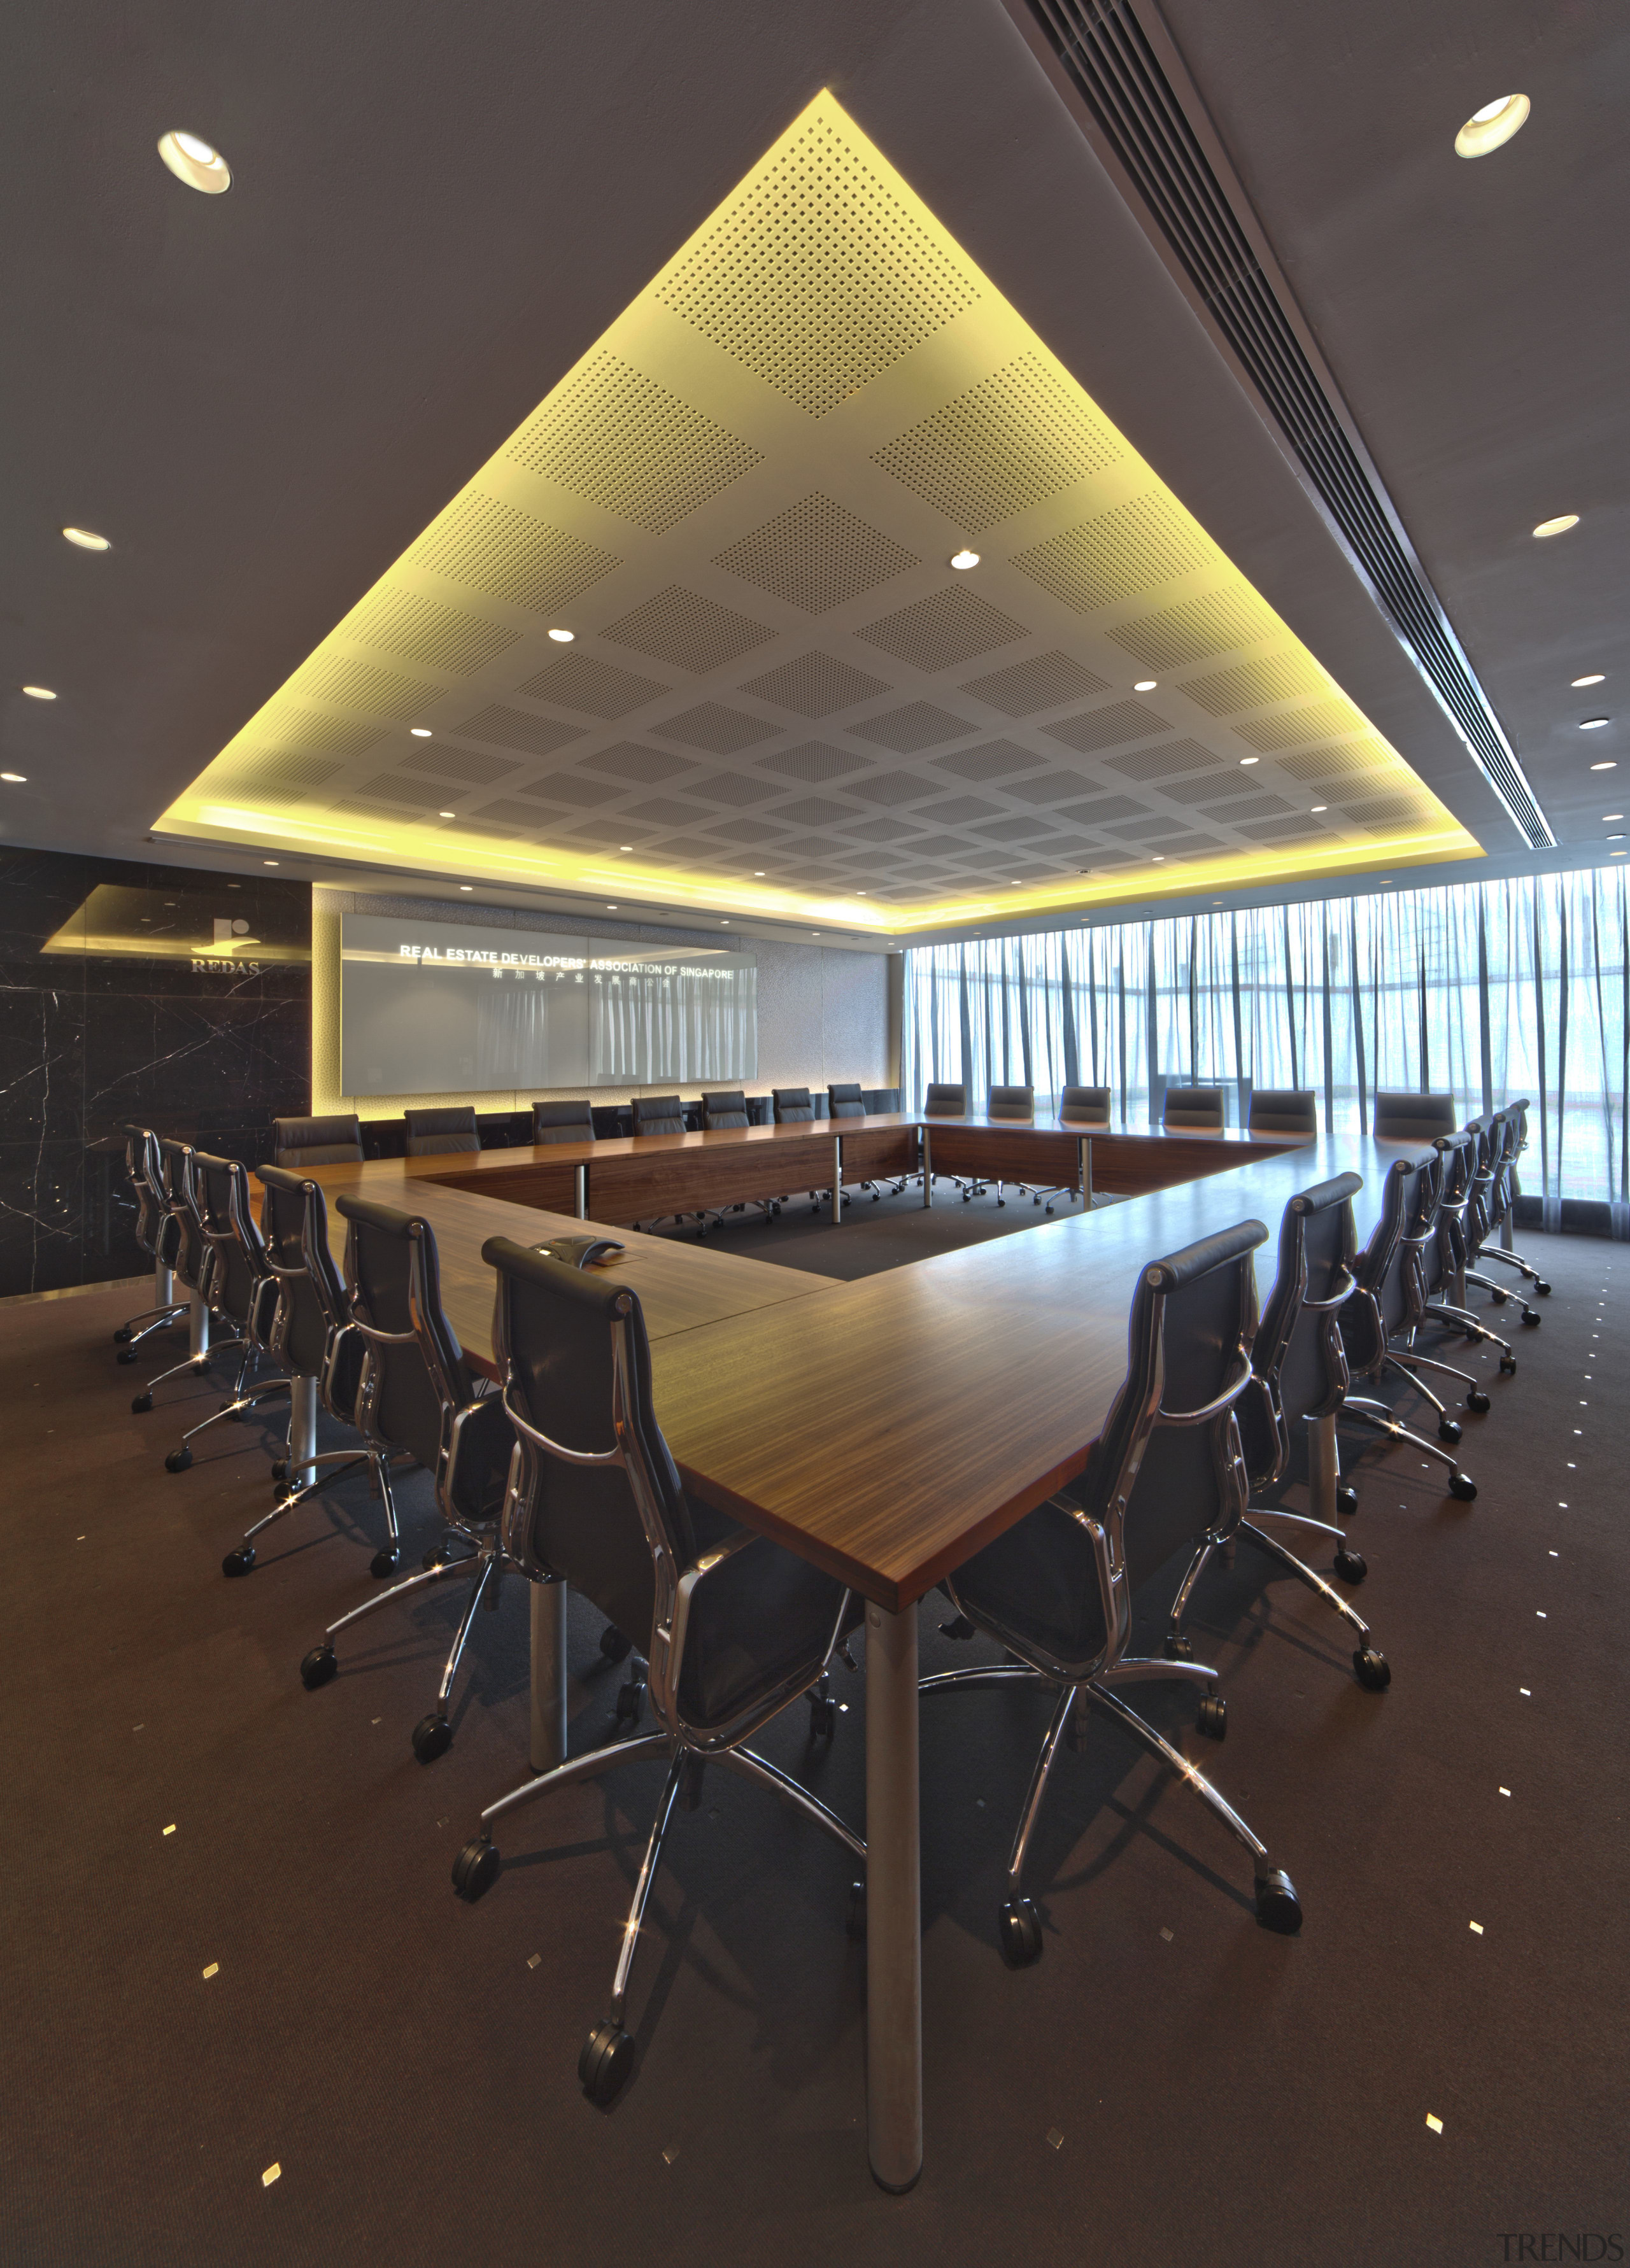 Contemporary offices of  the Real Estate Developer's architecture, auditorium, ceiling, conference hall, furniture, interior design, lighting, table, brown